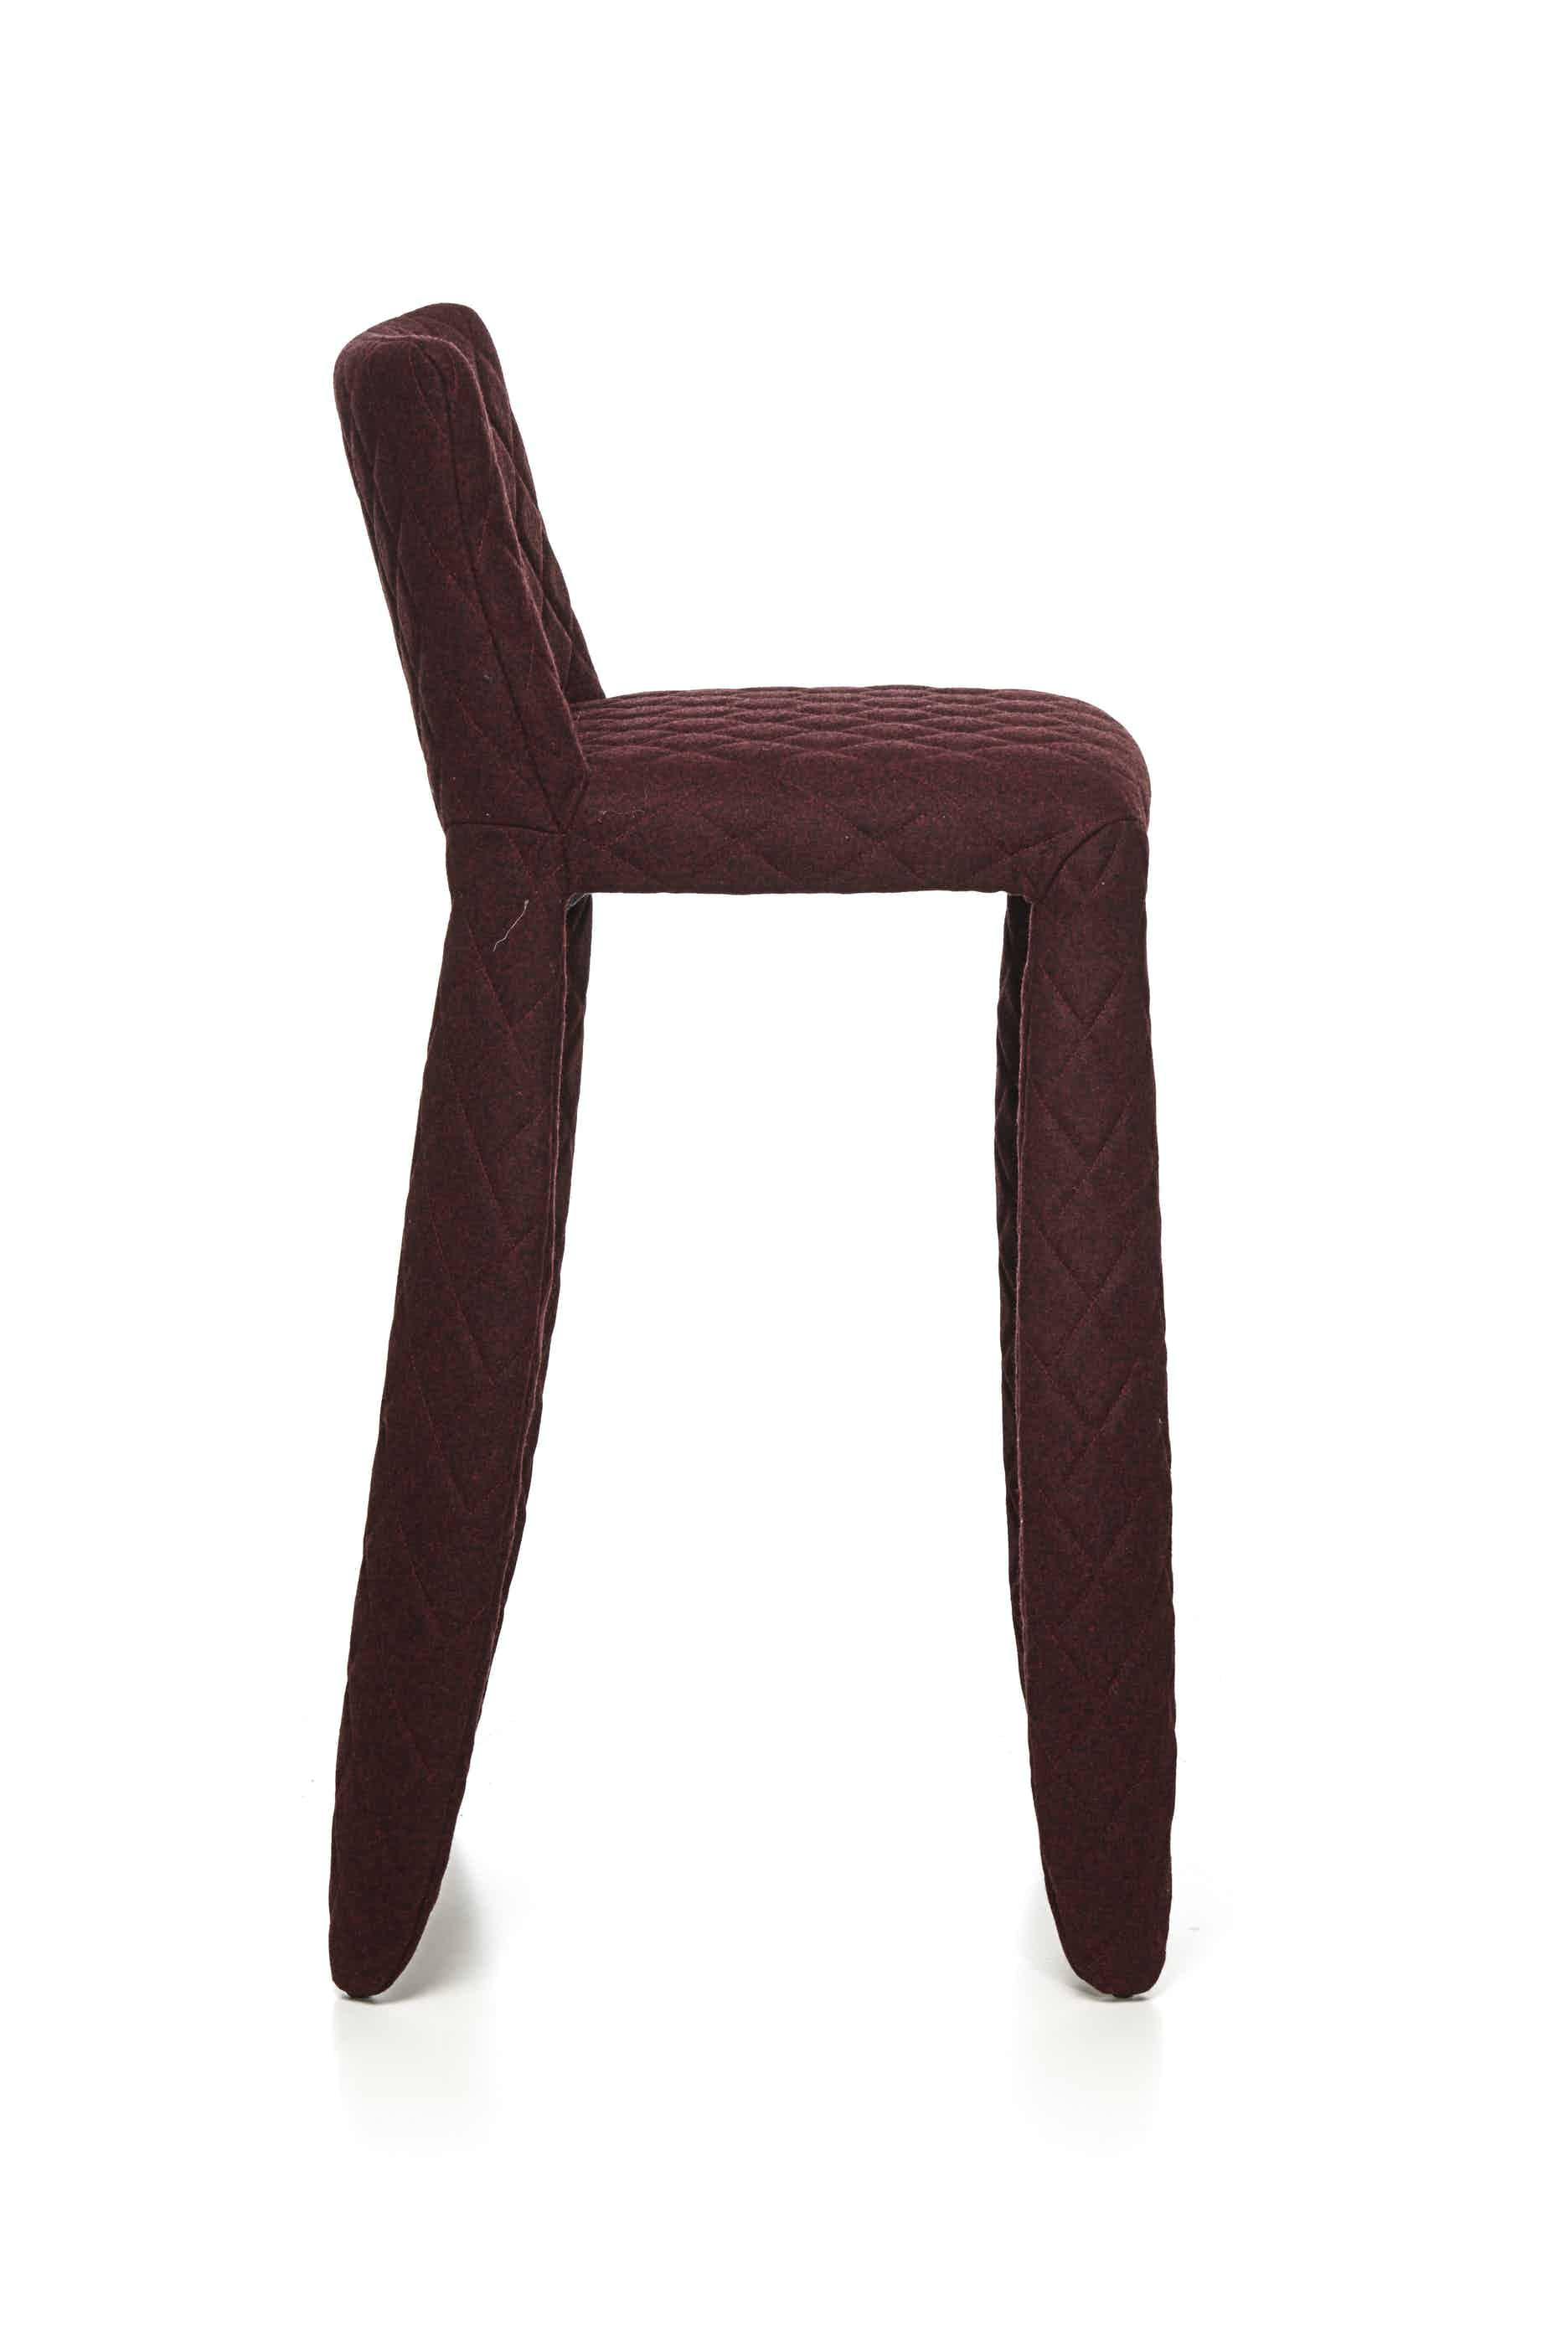 Moooi monster bar stool divina melange side haute living